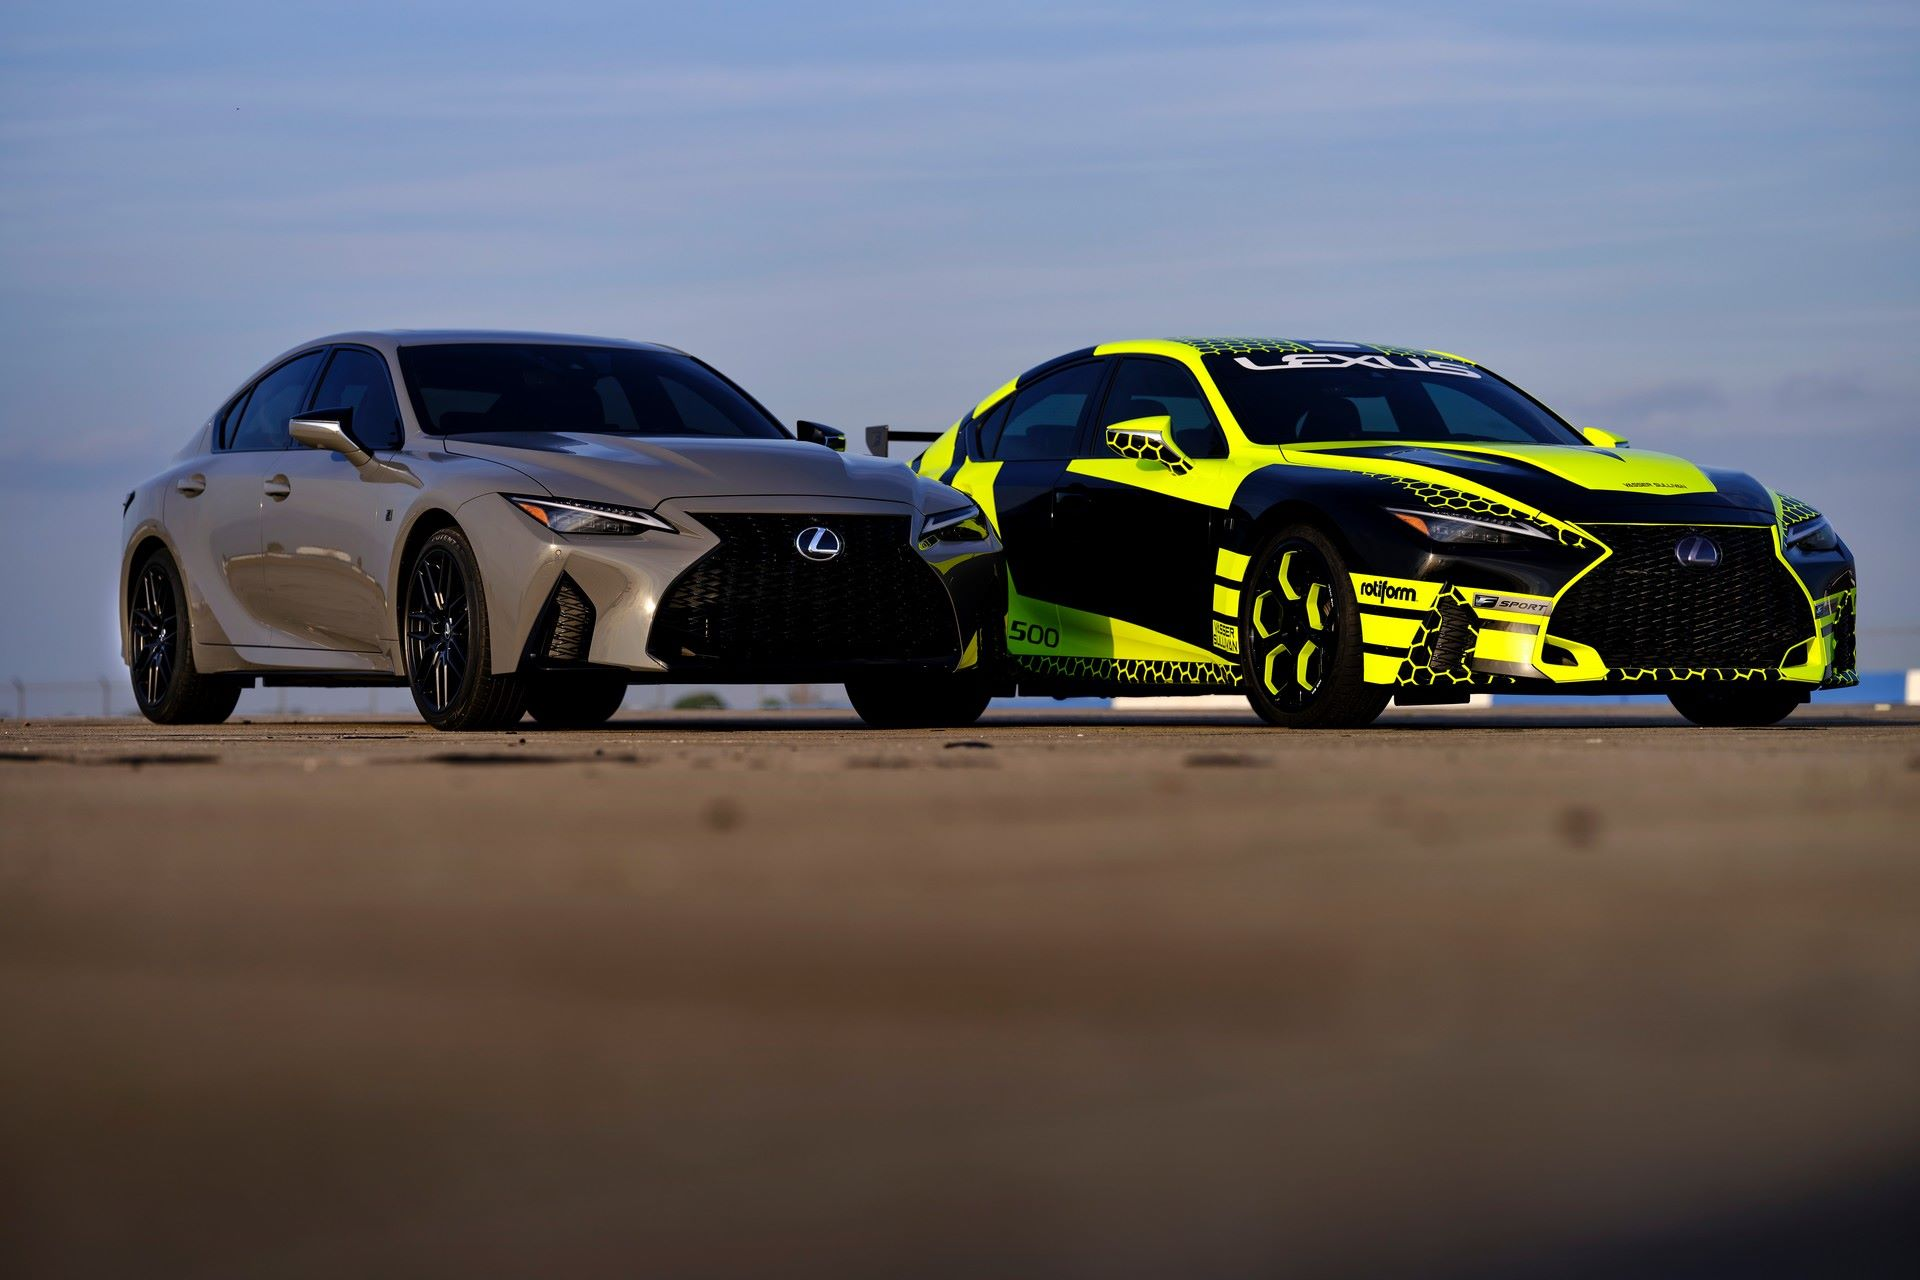 Lexus-IS-500-F-Sport-Performance-Launch-Edition-40